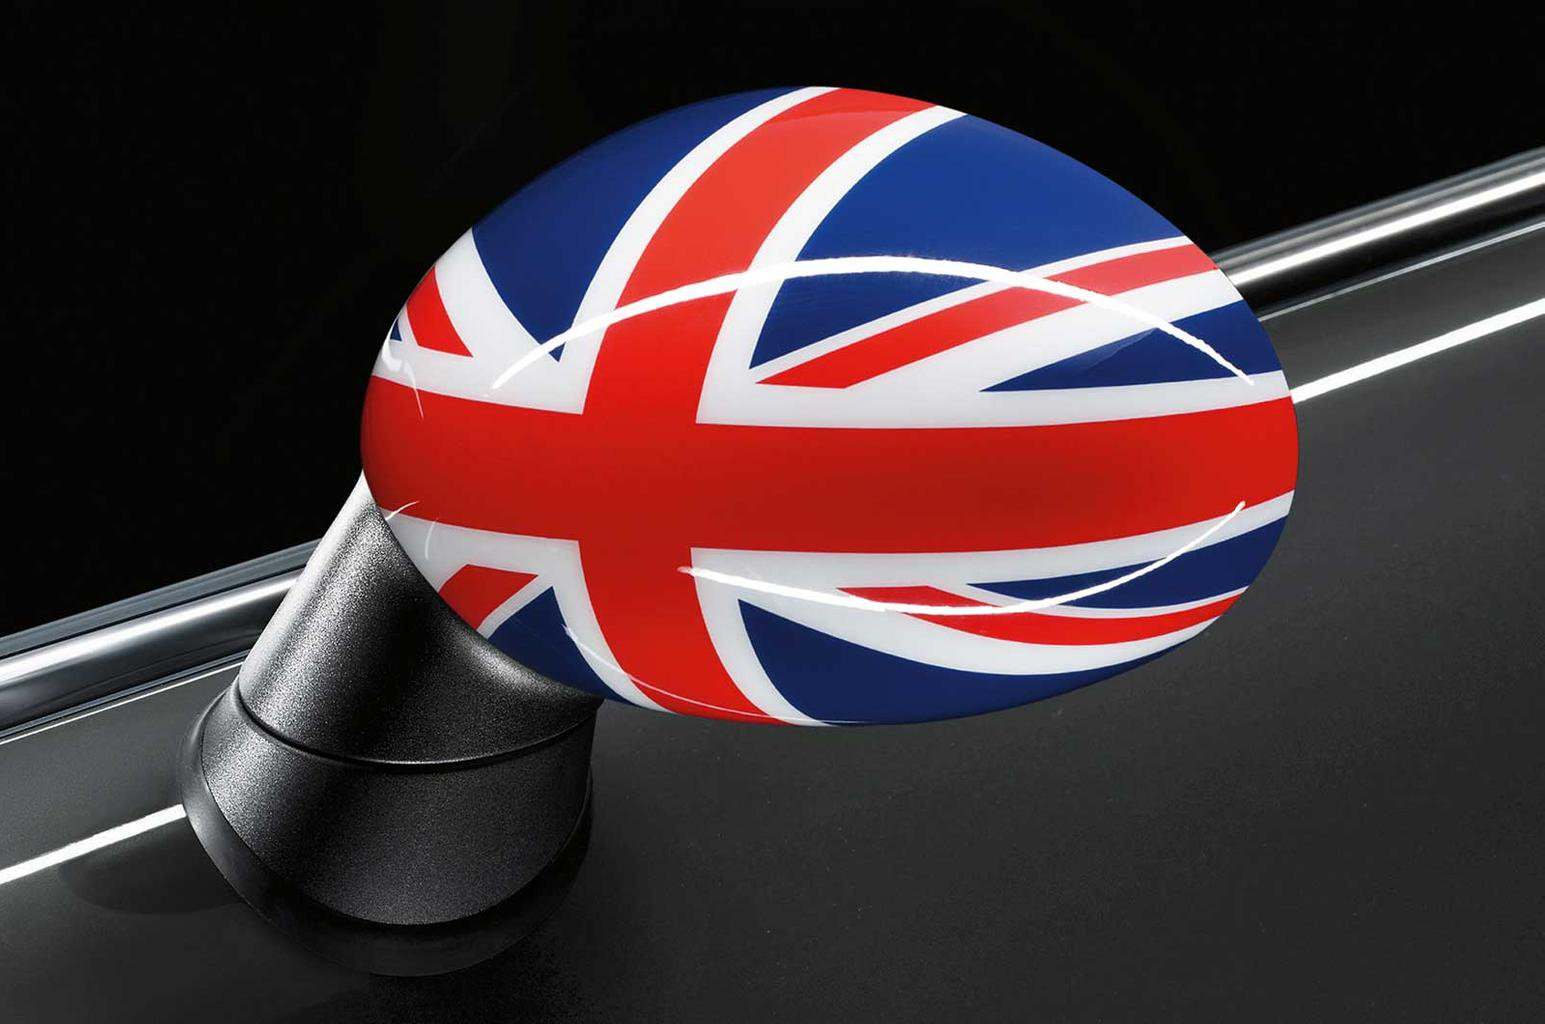 Brexit - what does the EU referendum result mean for car buyers?